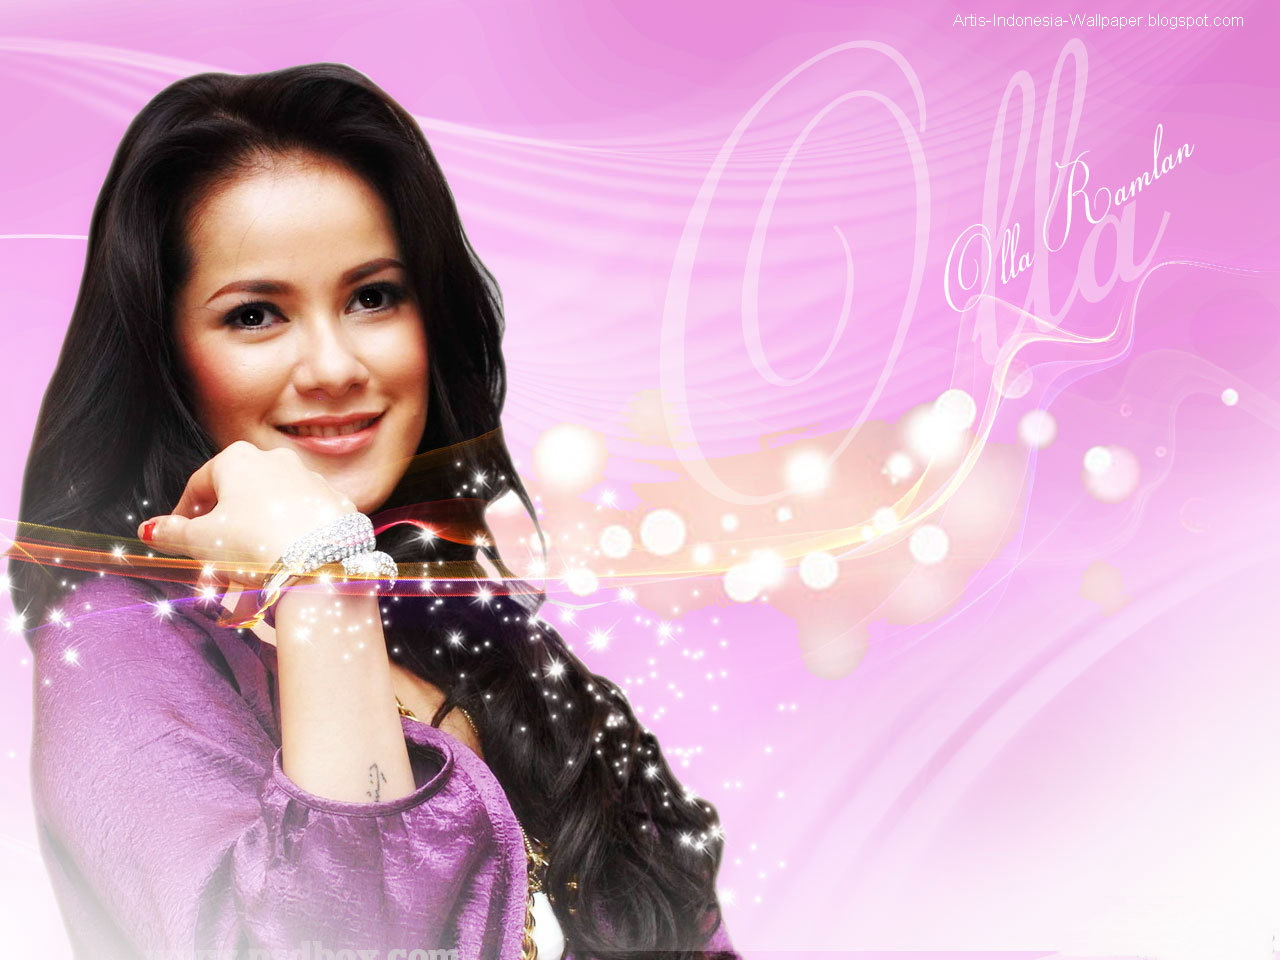 Artis Indonesia Wallpaper  September 2011